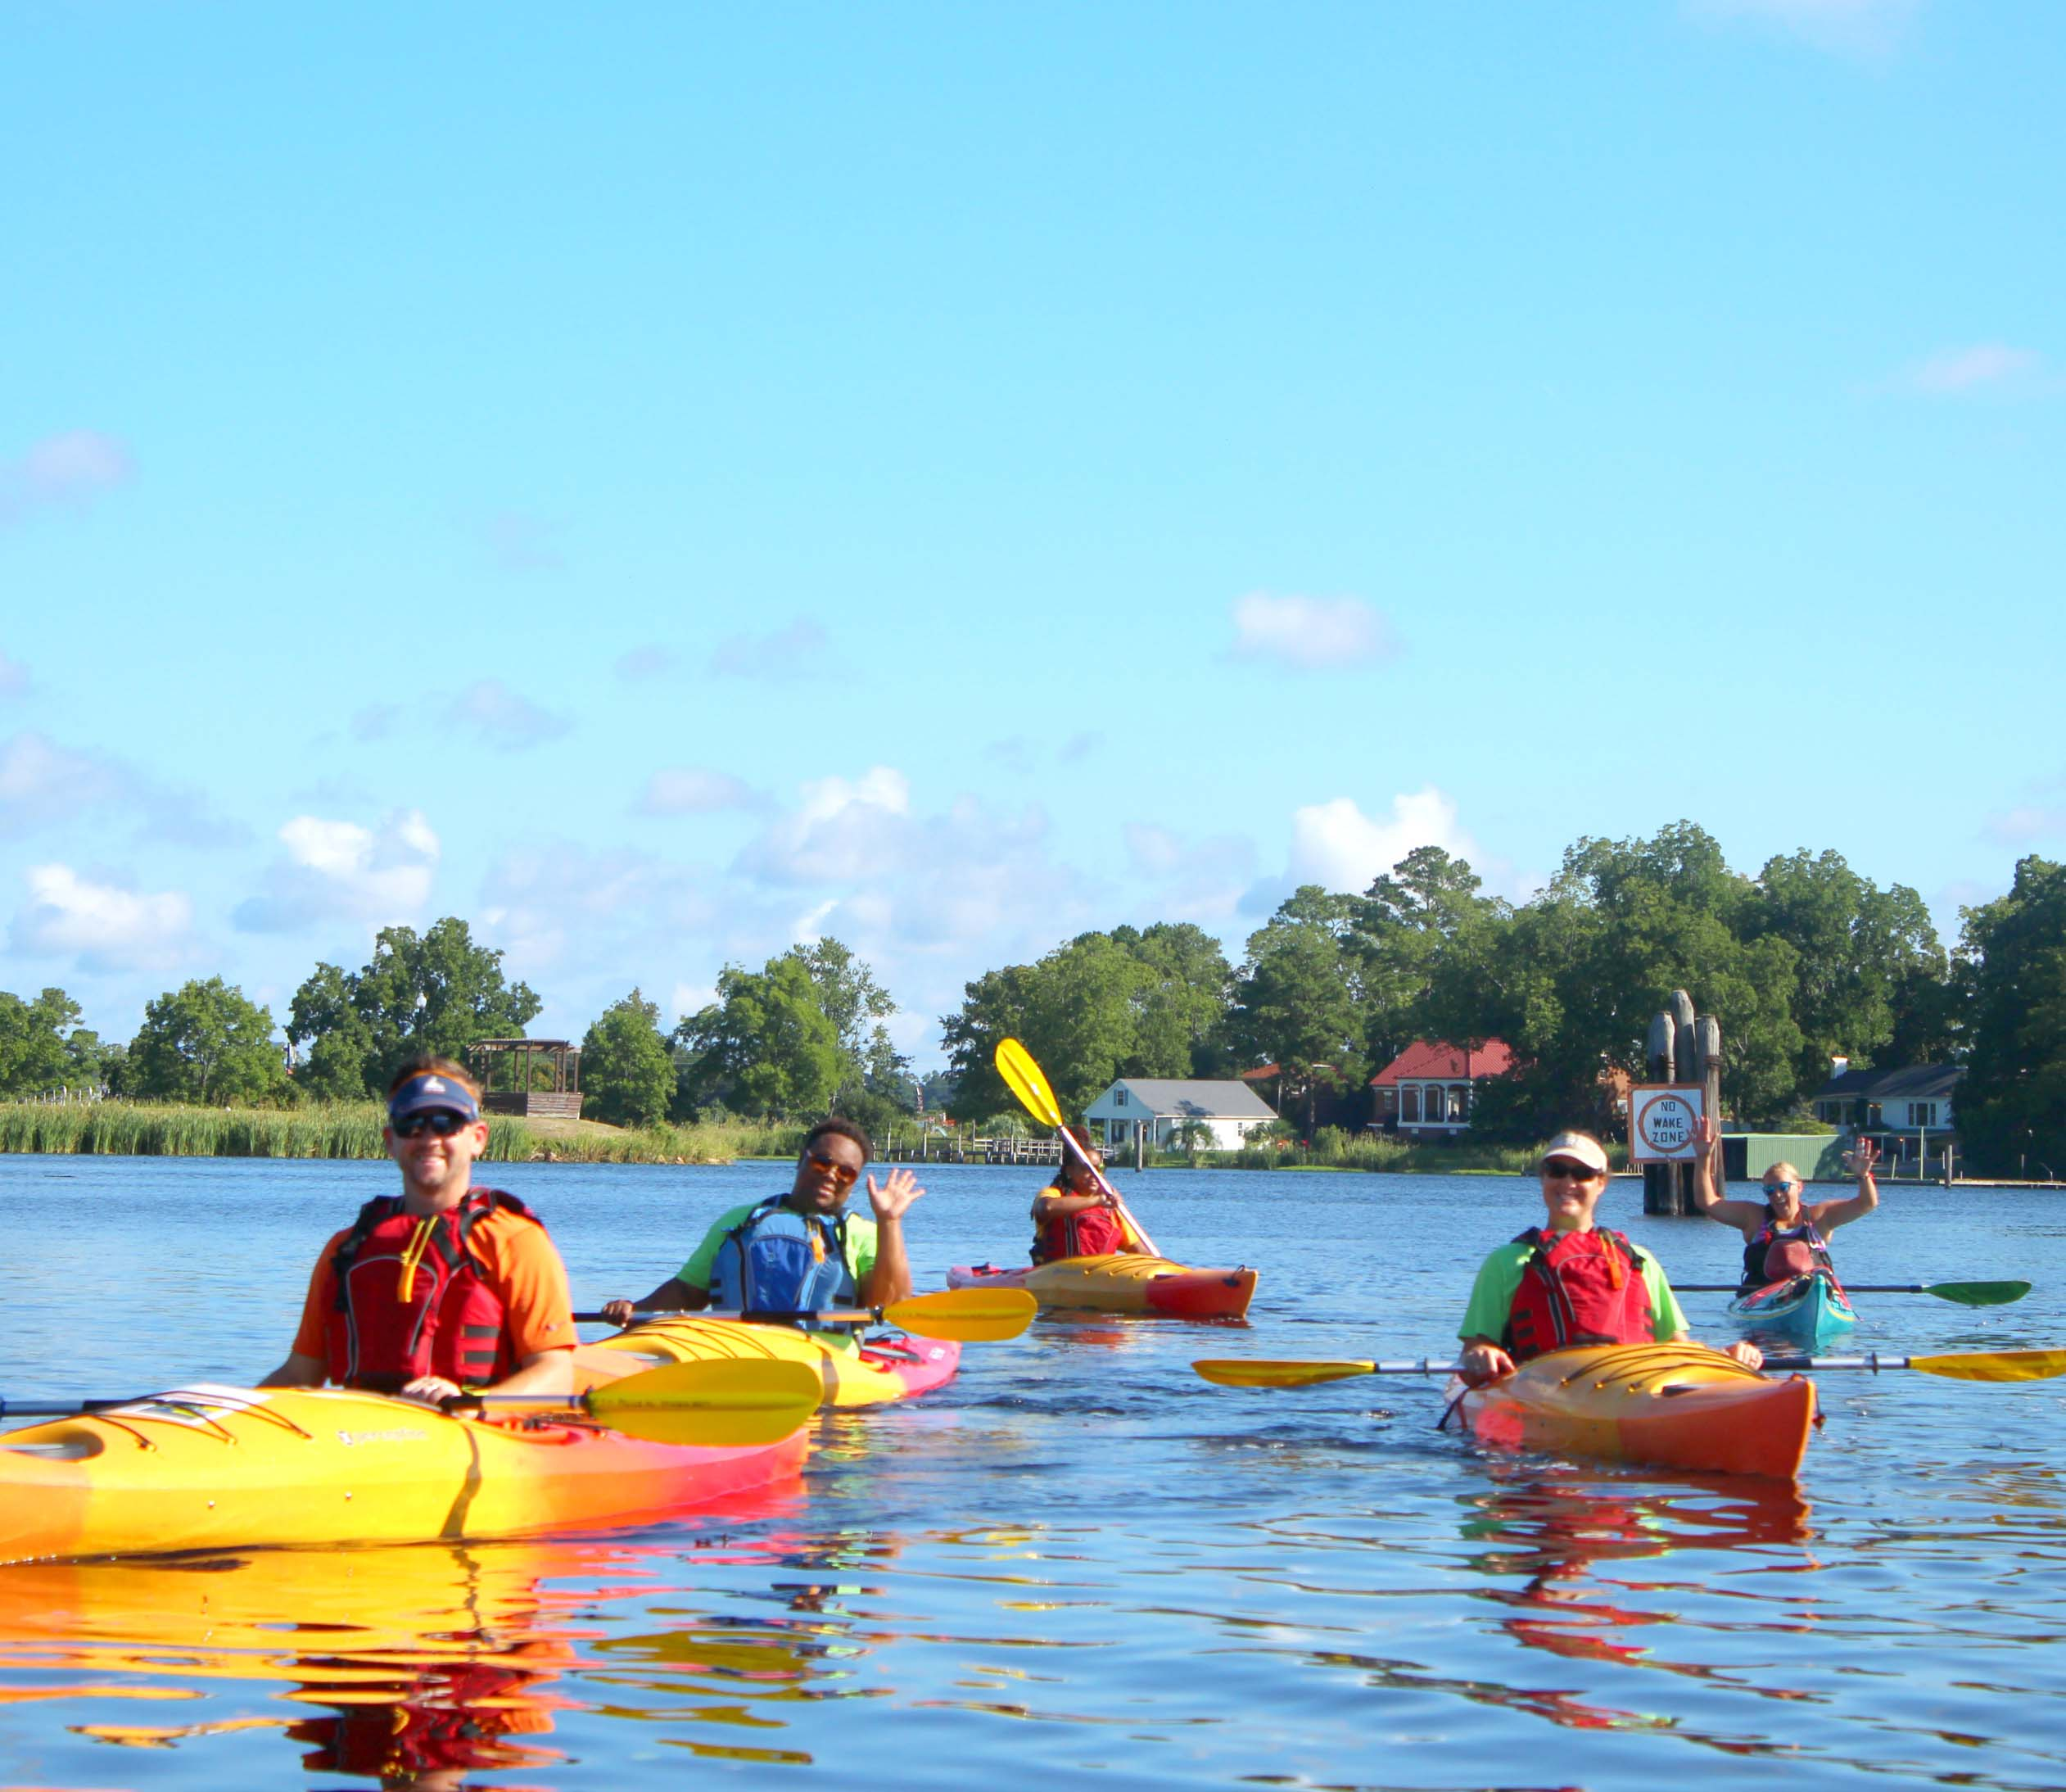 Five young kayakers paddle on a placid lake.